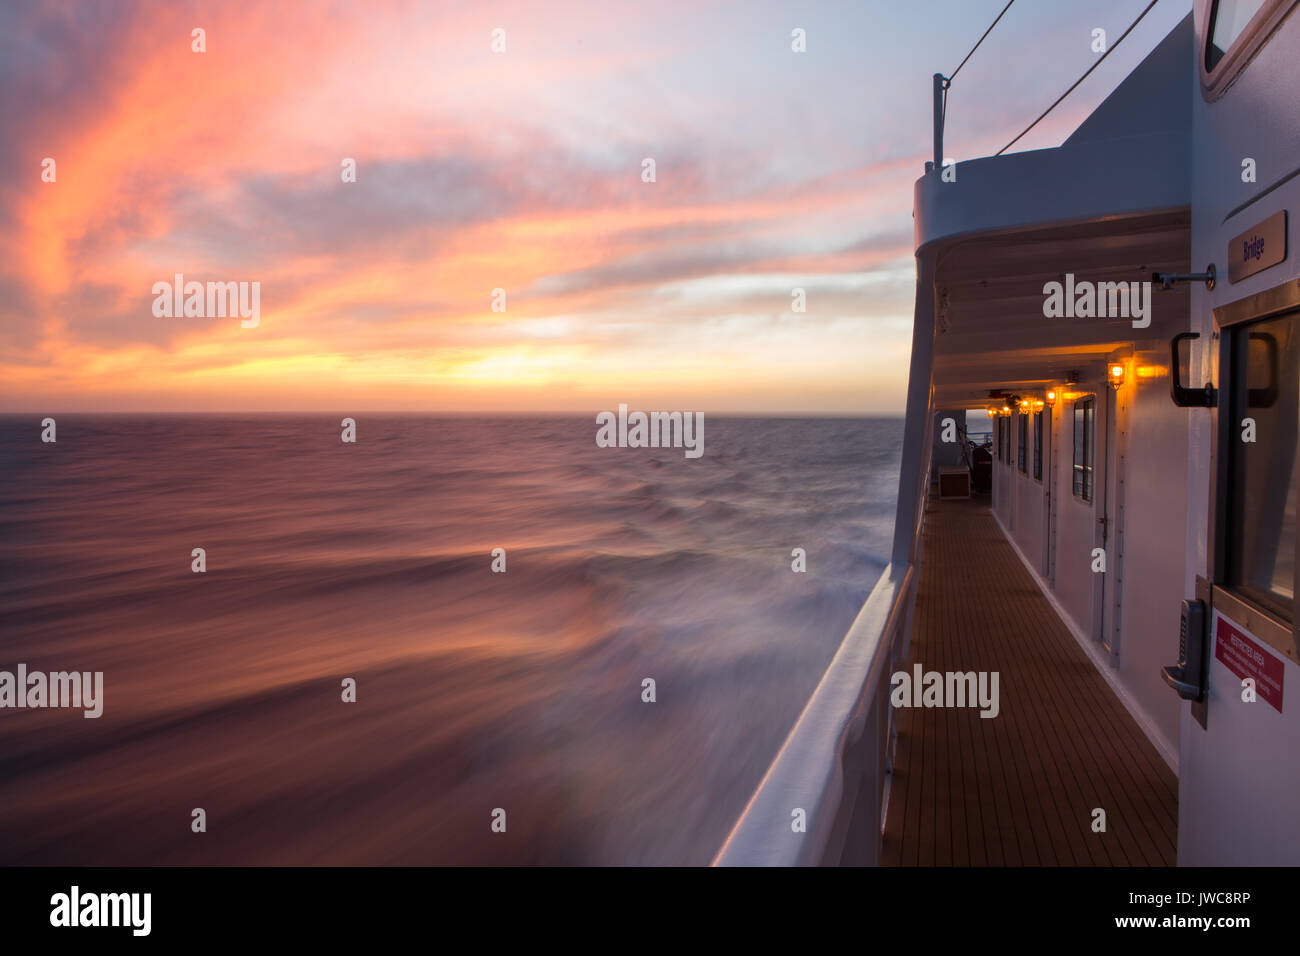 The rising sun illuminates clouds above the waters near Isla Coiba National Park as an expedition cruise ship,the National Geographic Sea Lion,speeds through the water. - Stock Image